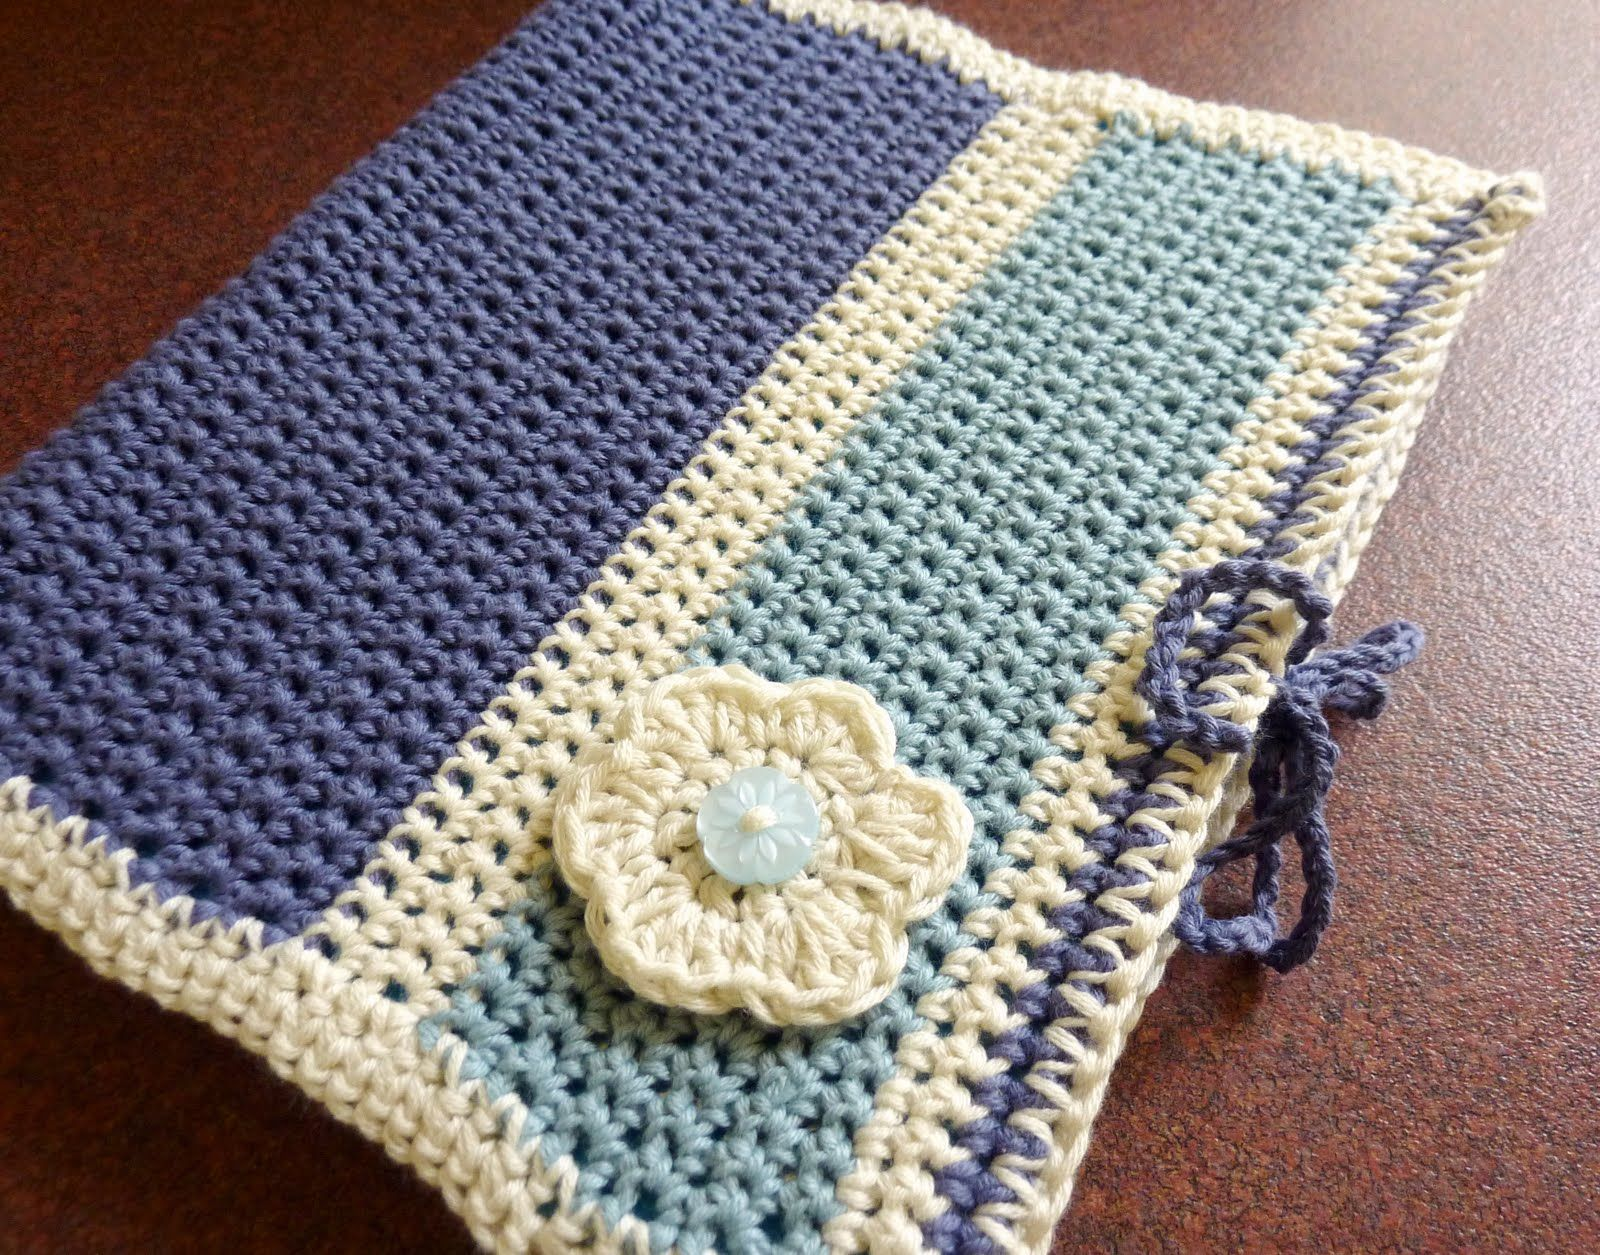 Book Cover Crochet Hook ~ Crochet book cover pattern free crochet bible cover patterns